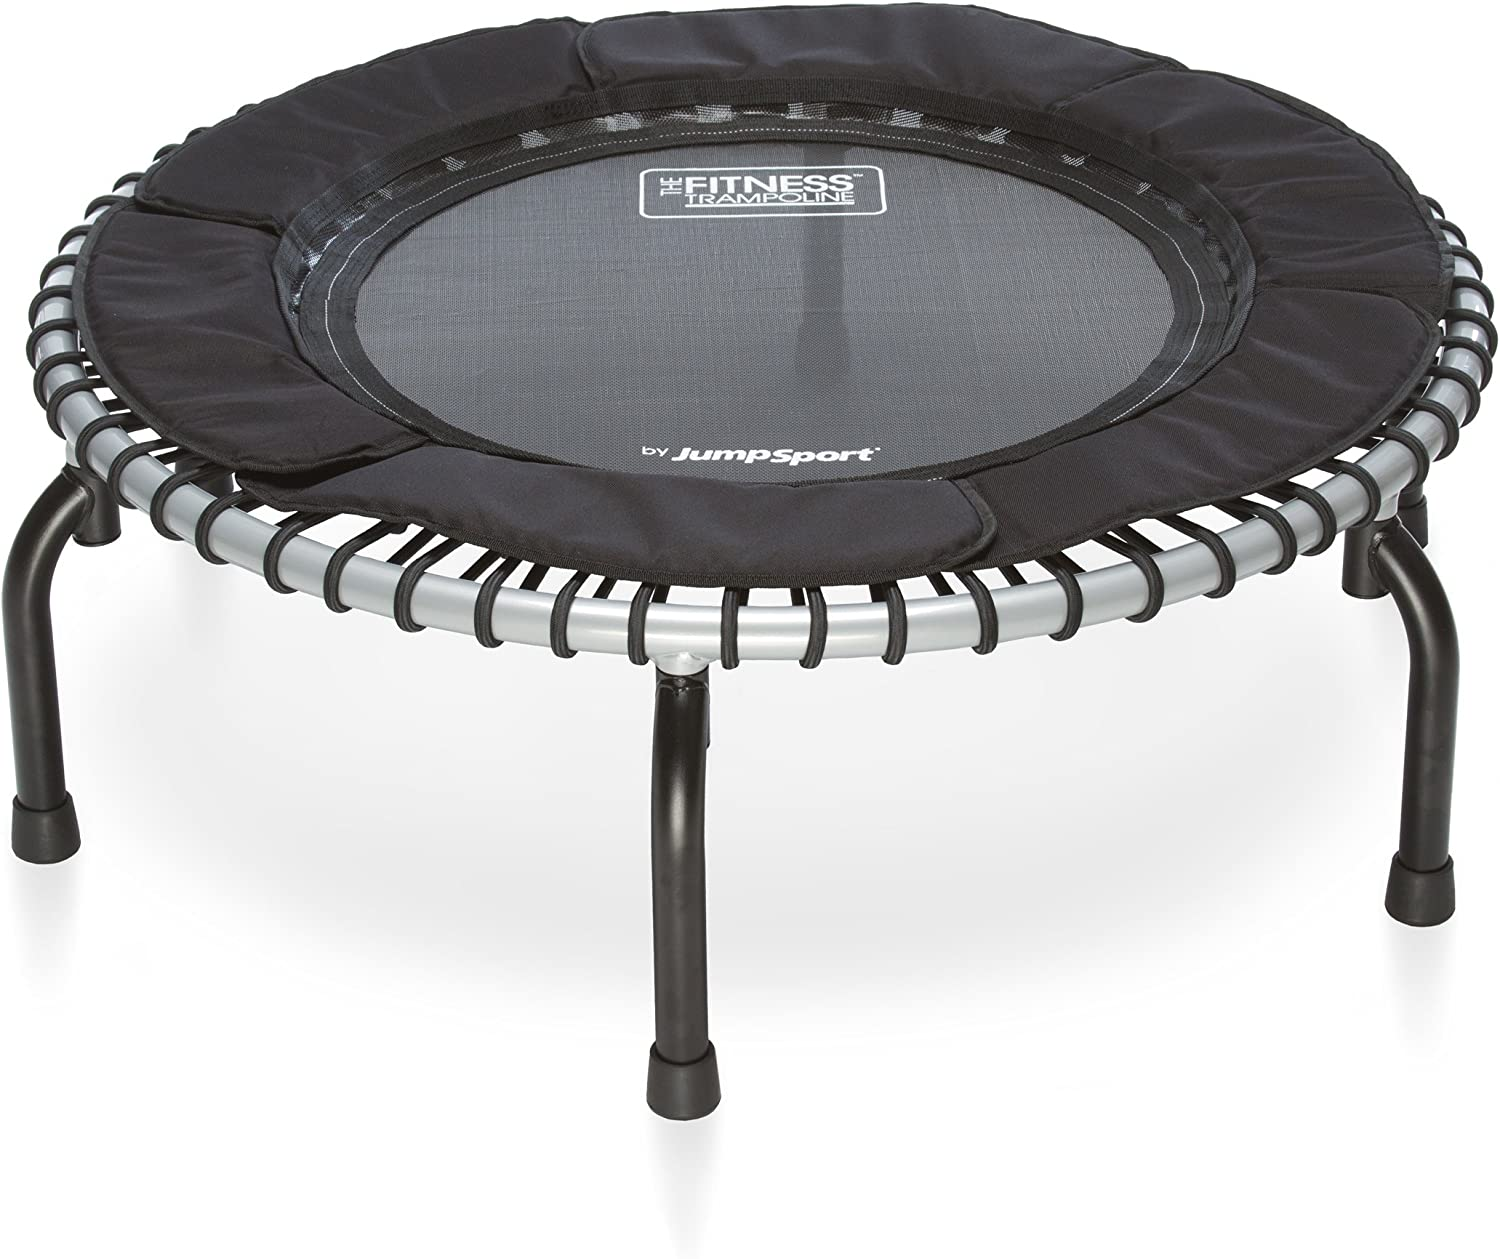 JumpSport Fitness Trampoline Model 370 Top Rated for Quality and Durability Quietest Most Stable Bounce No-Tip Arched Legs 4 Music Workout Videos Included